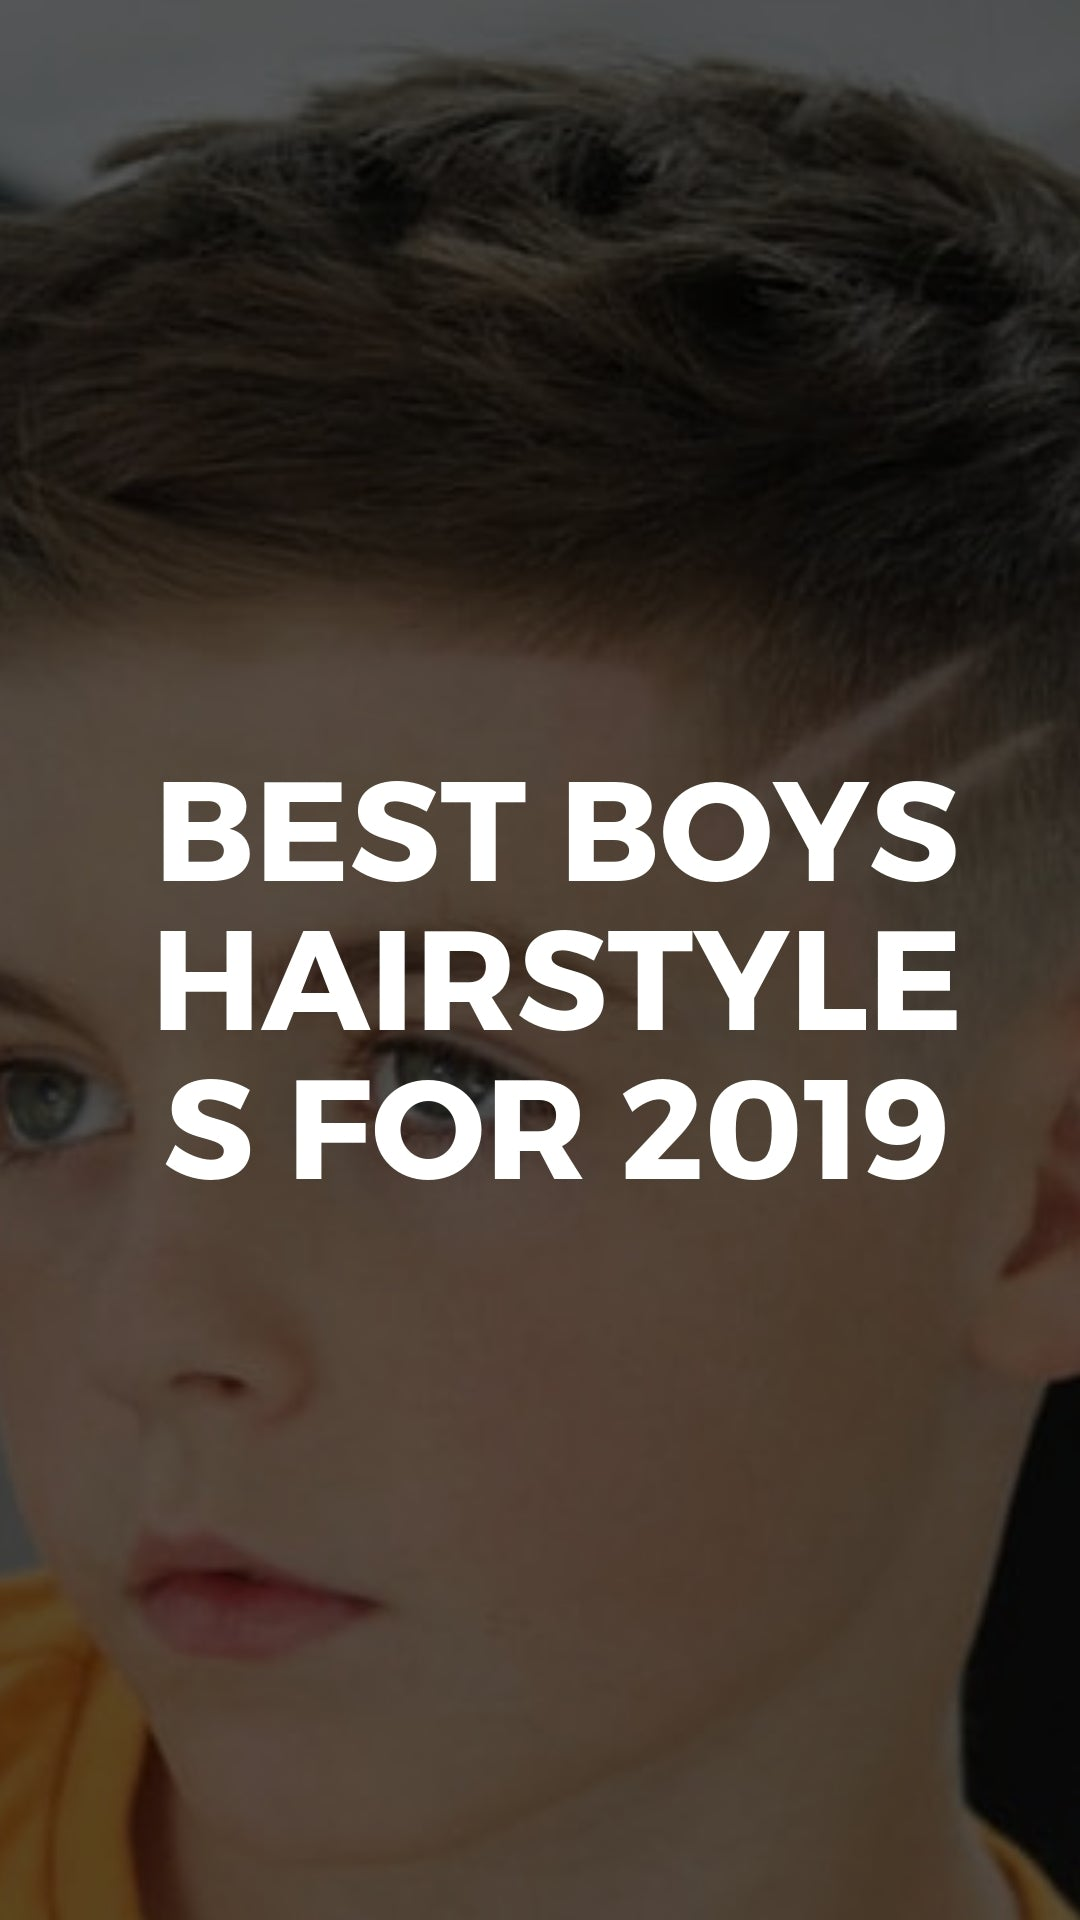 5 Cool Haircuts For Boys Best Boys Hairstyles For 2019 Lifestyle